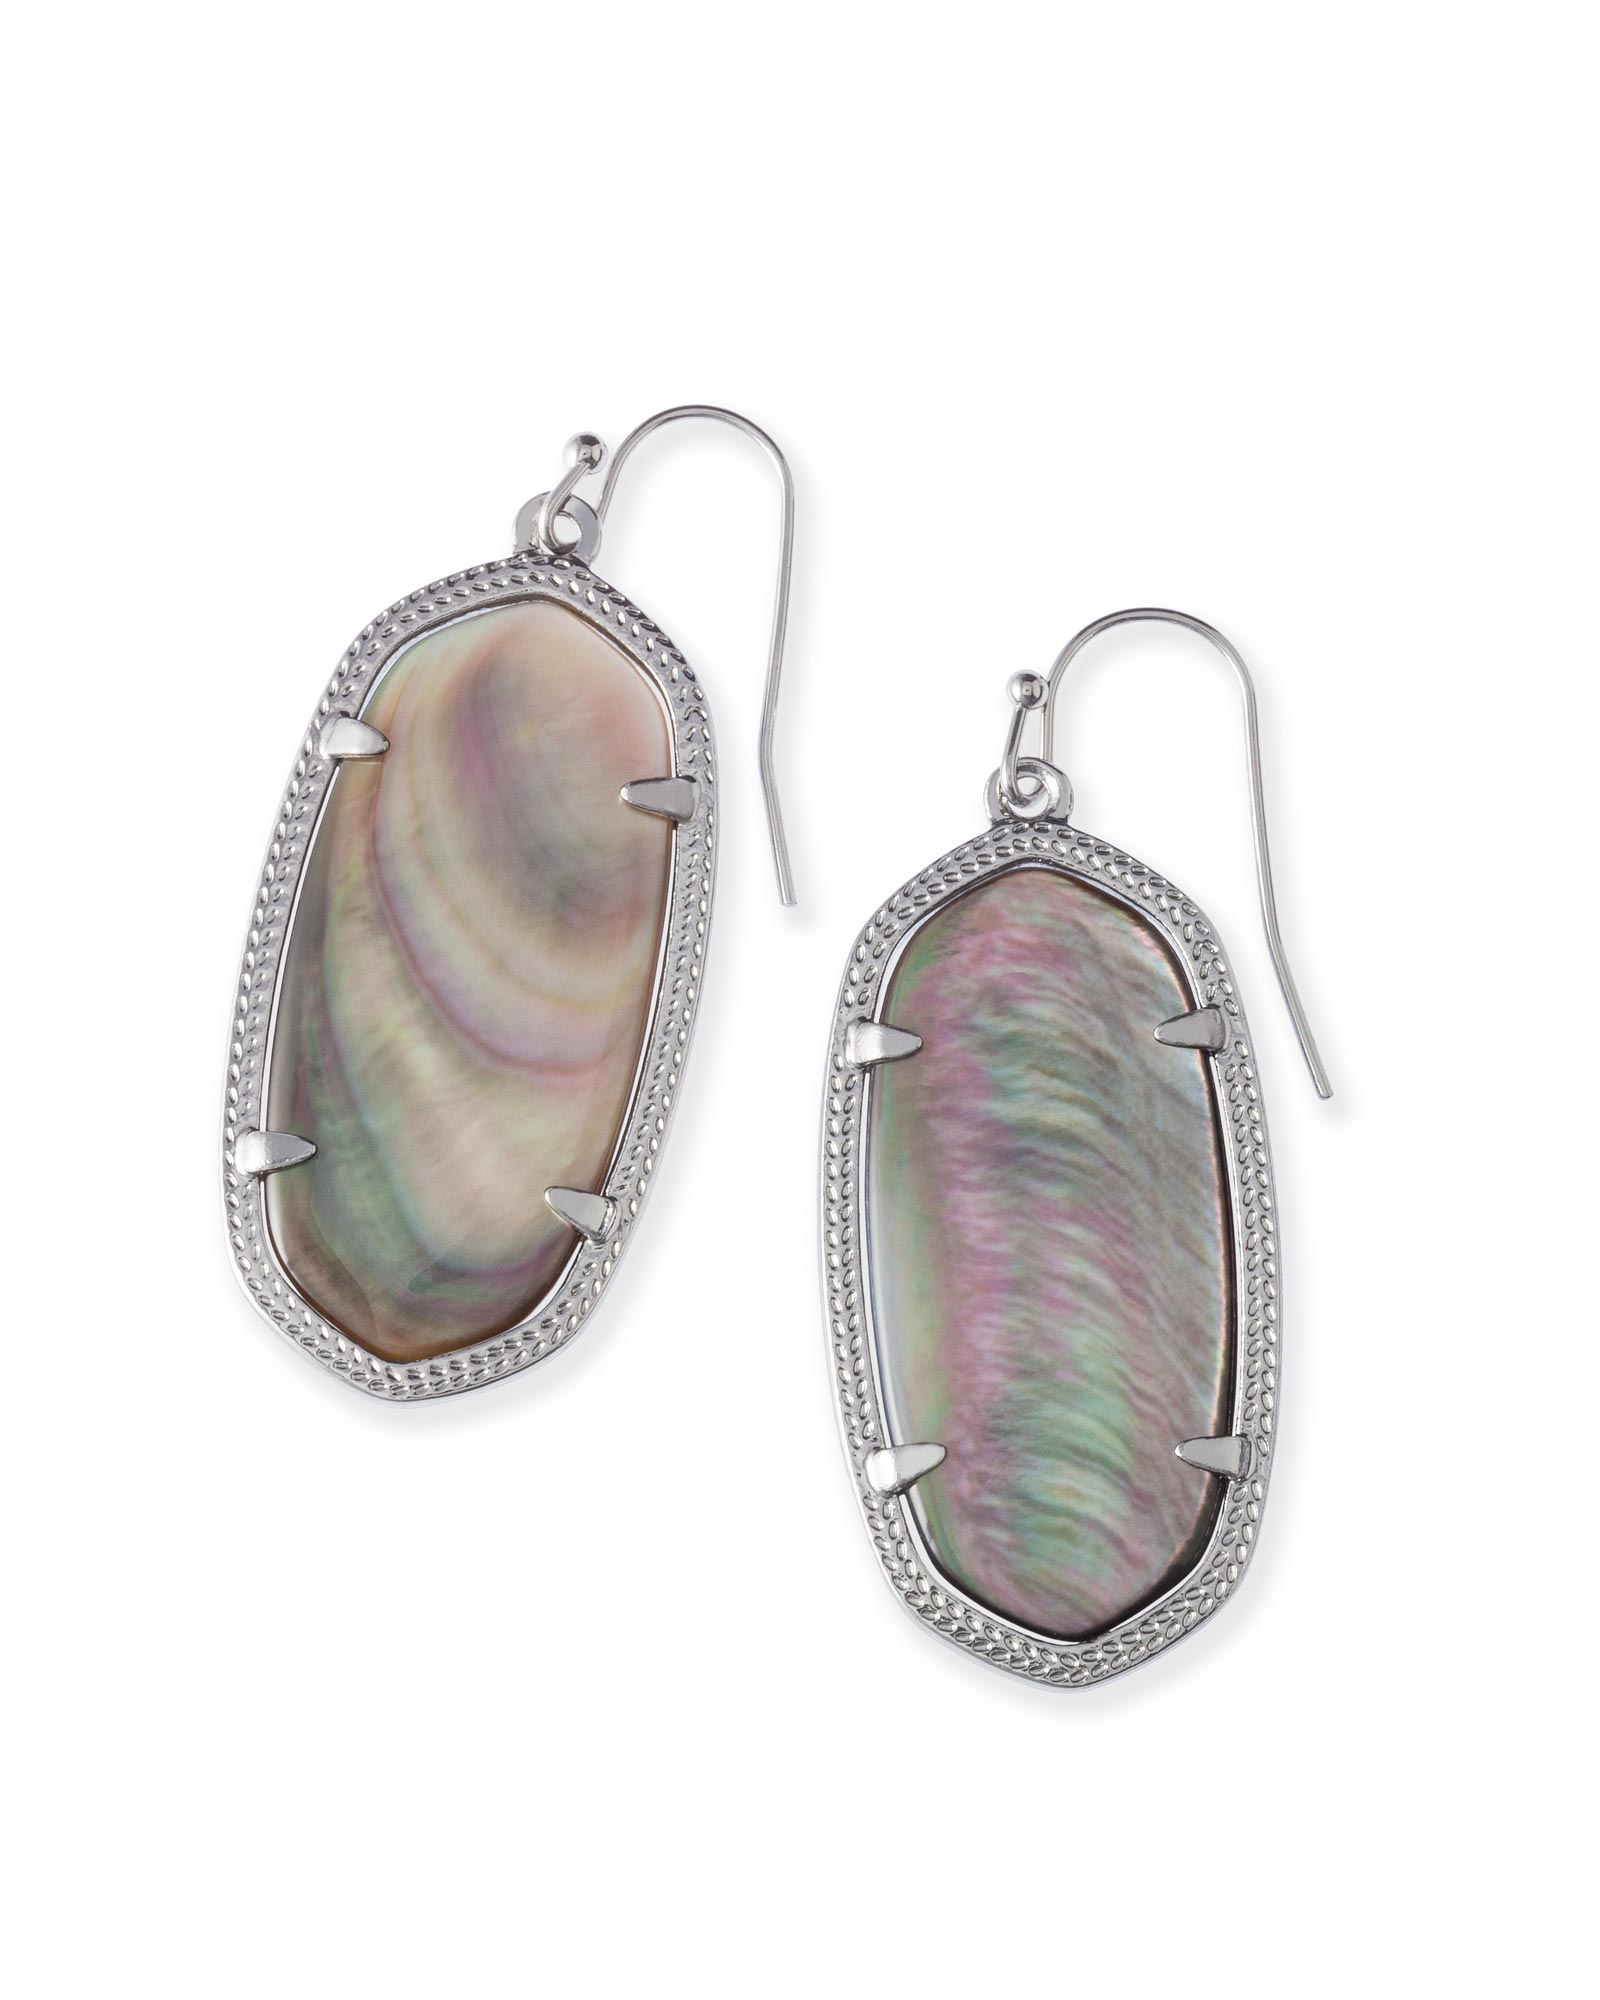 Elle Bright Silver Drop Earrings in Black Mother-of-Pearl